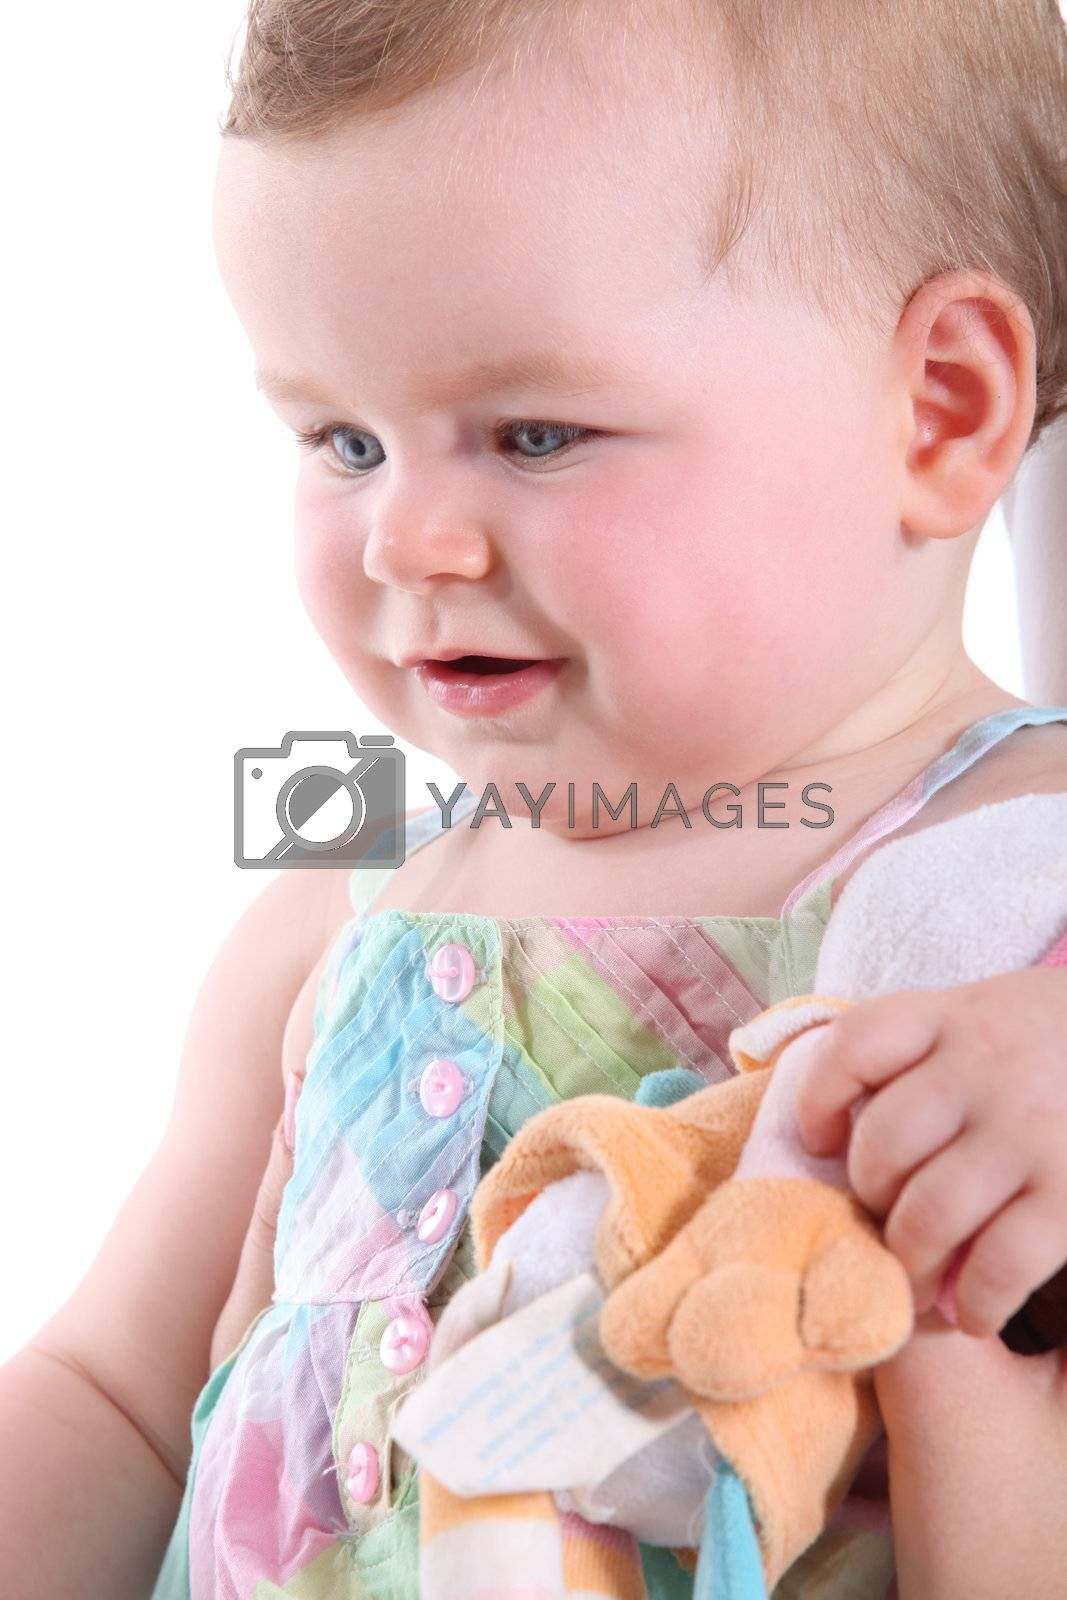 Toddler with toy by phovoir